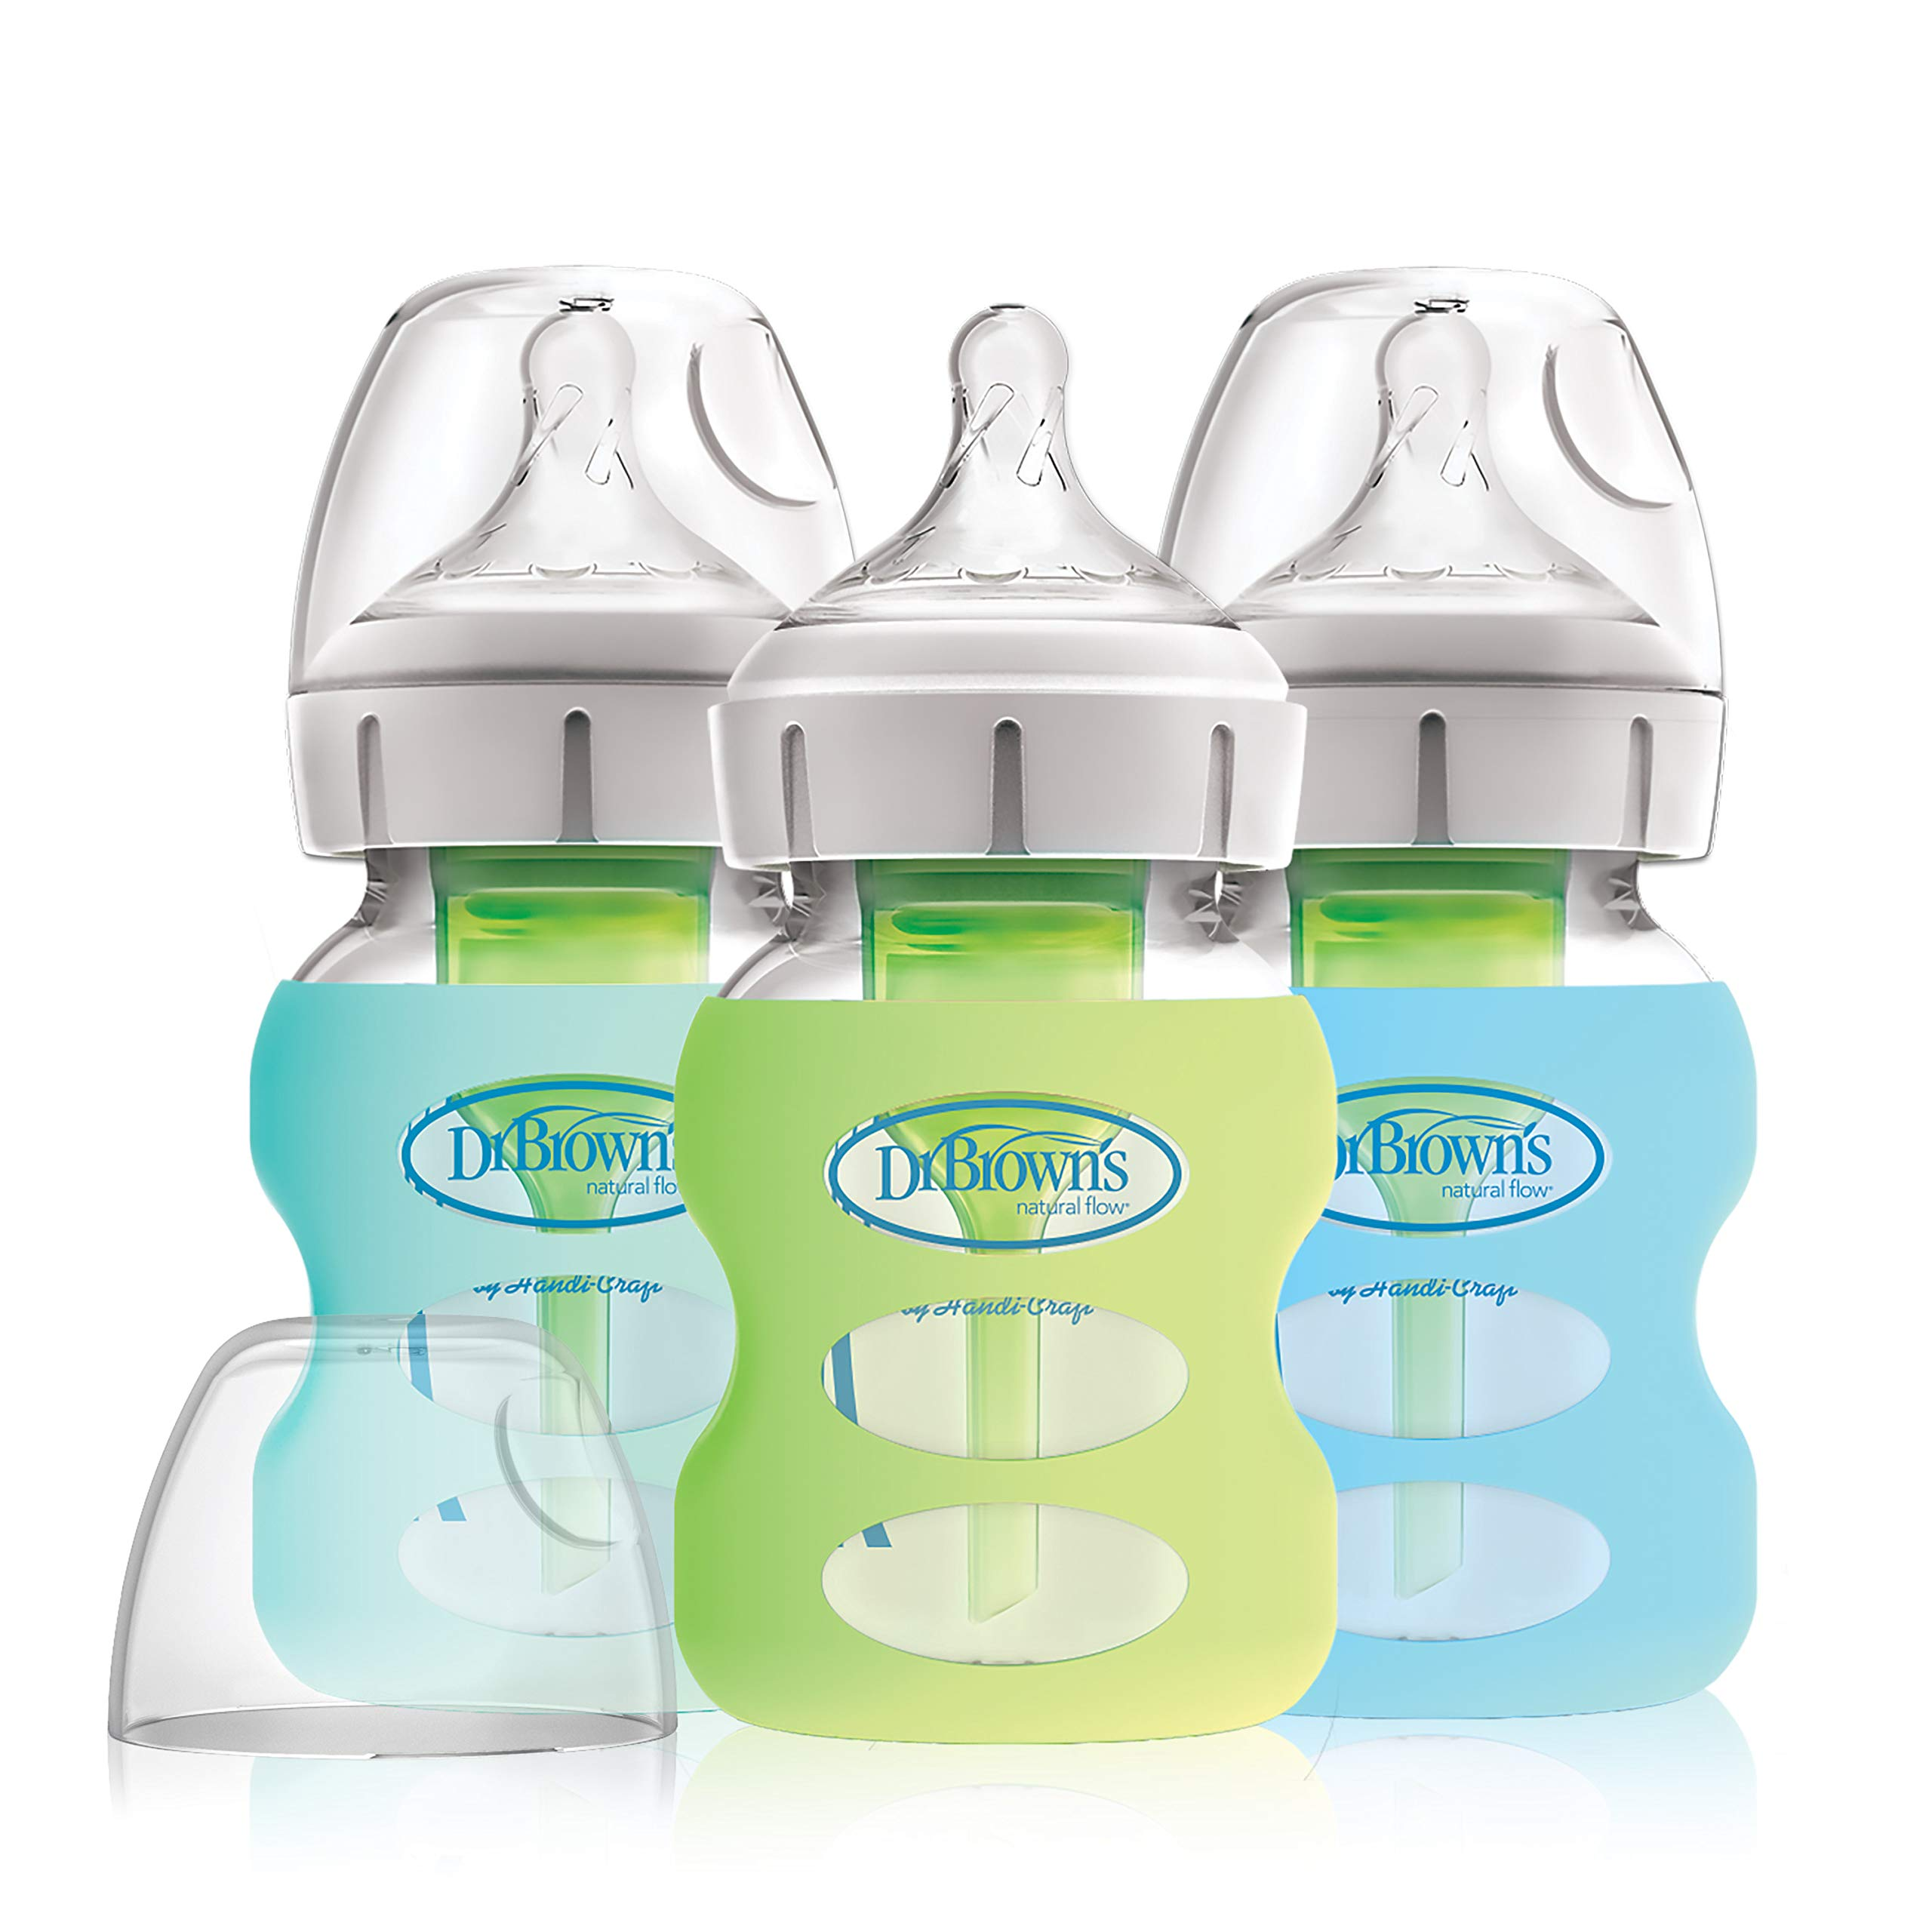 Dr. Brown's Options+ Wide-Neck Glass Baby Bottles in Silicone Sleeve, Mint/Green/Blue, 5 Ounce, 3 Count by Dr. Brown's